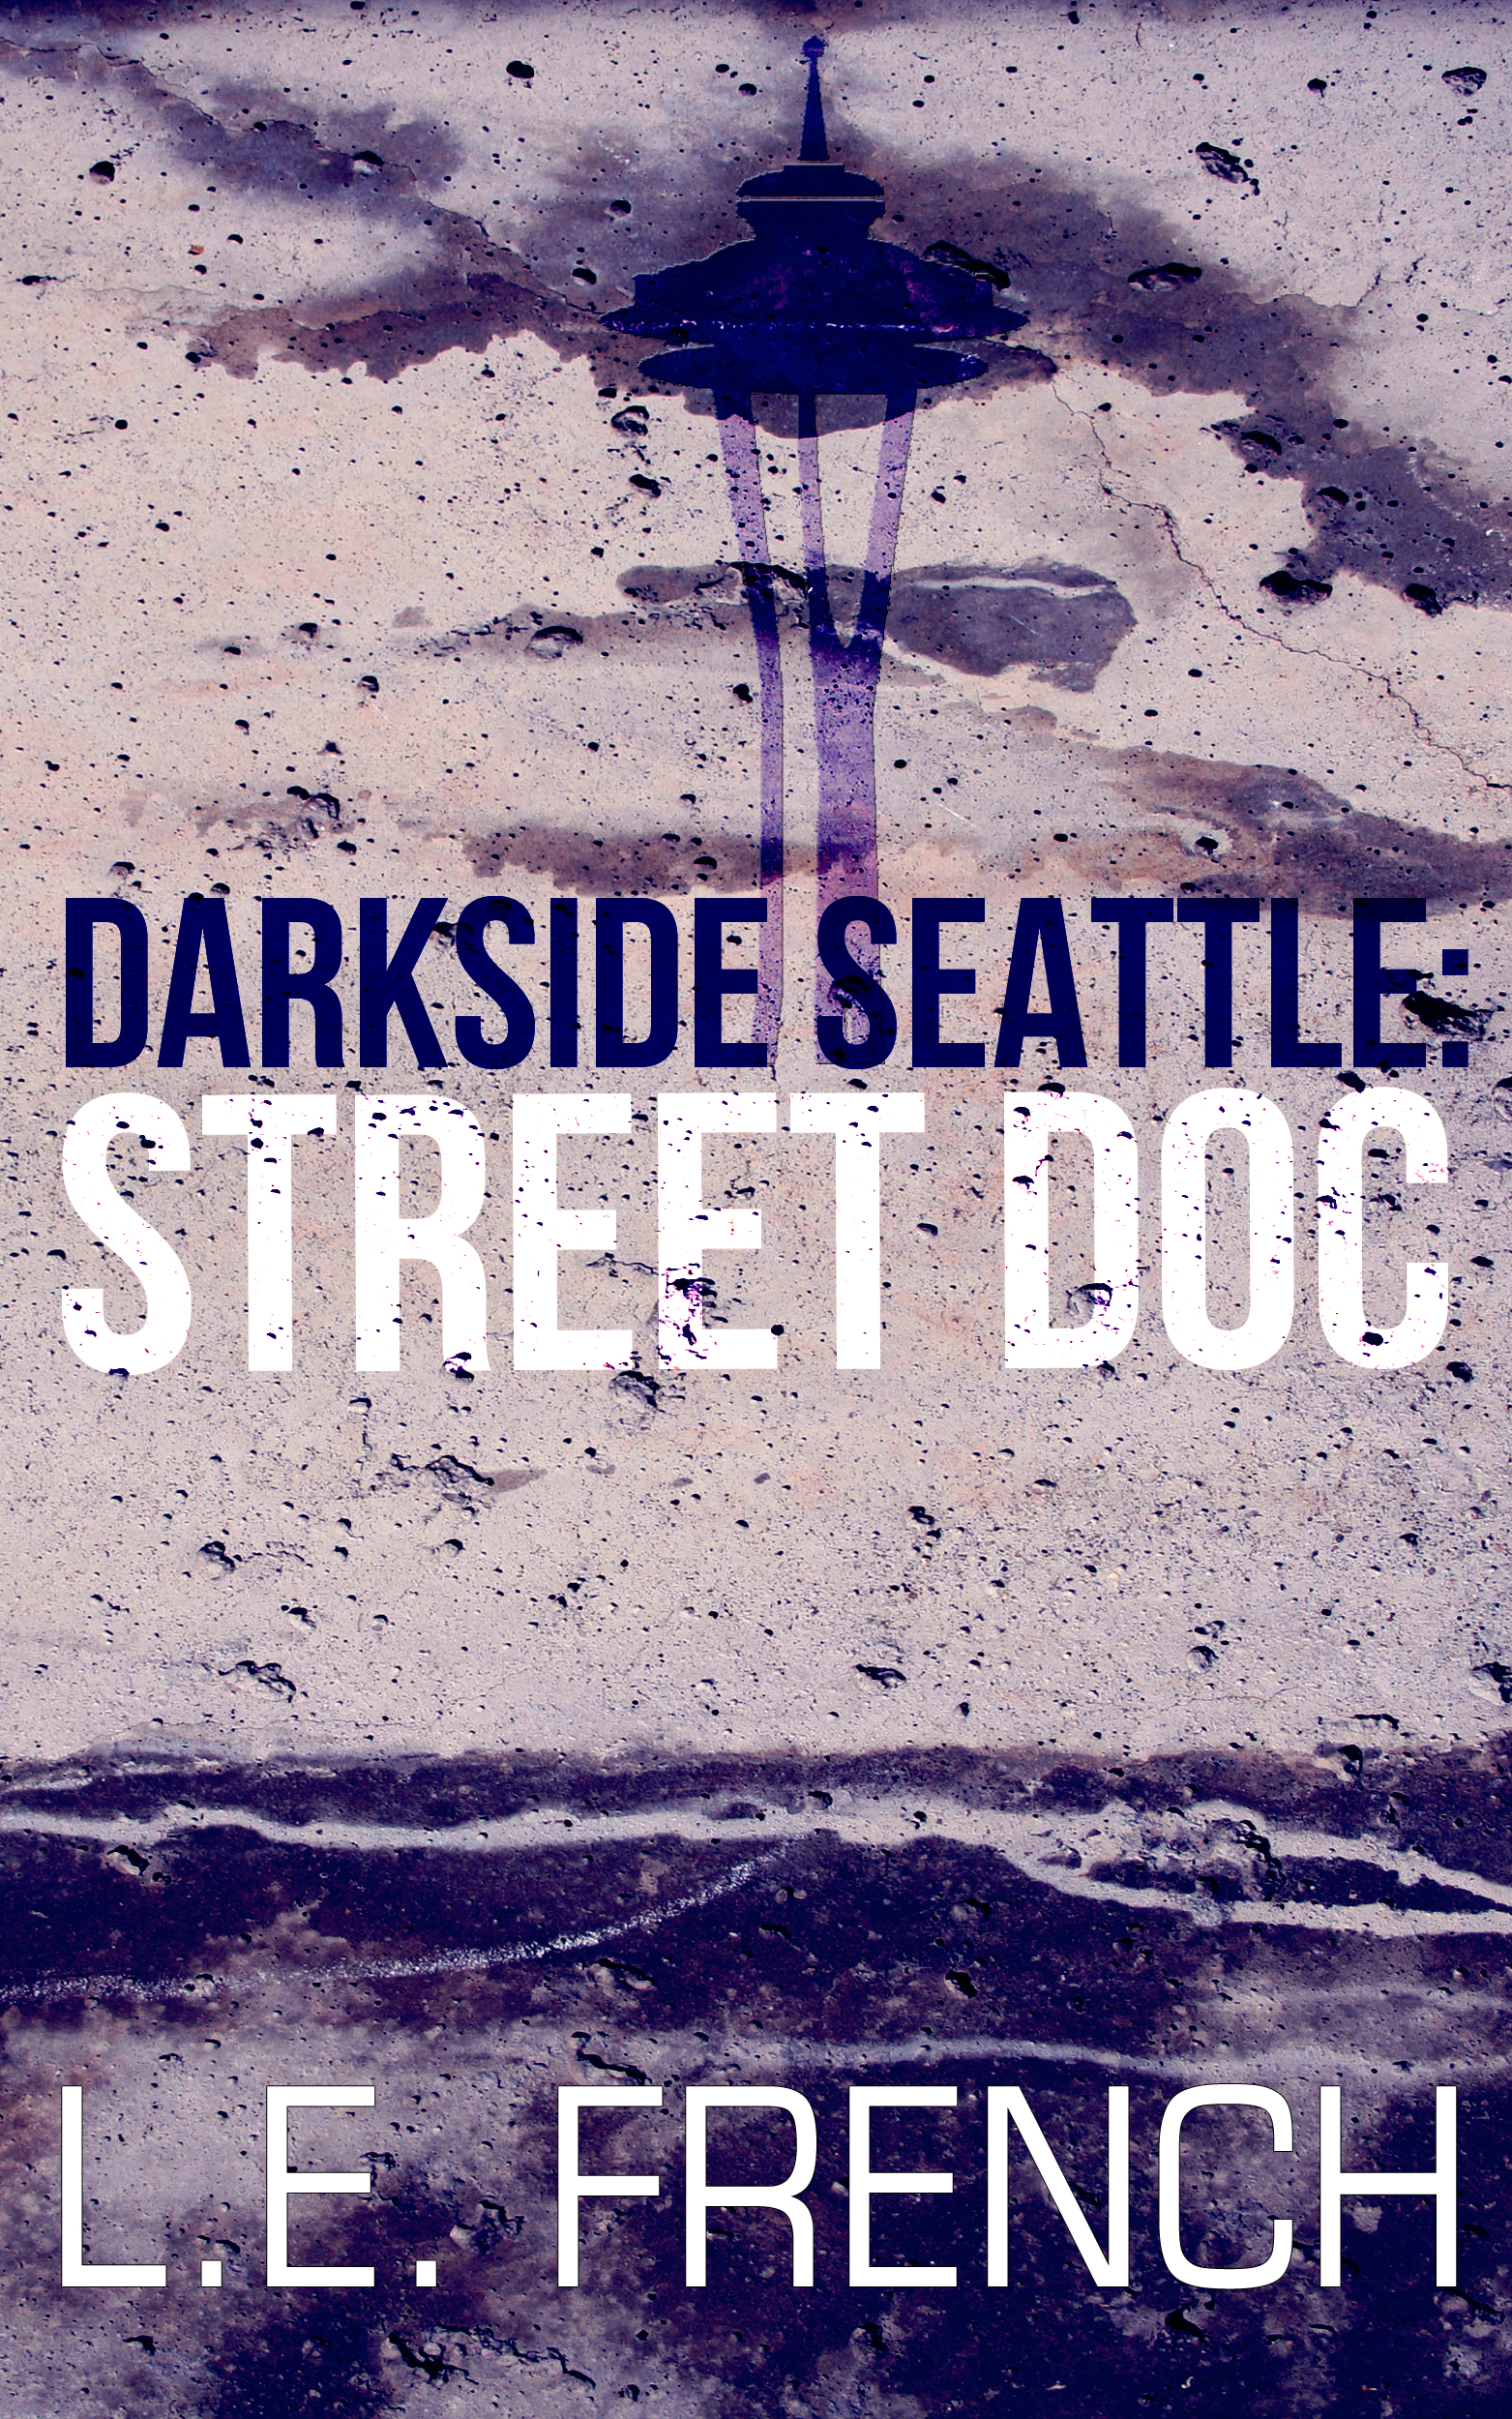 Darkside Seattle: Street Doc